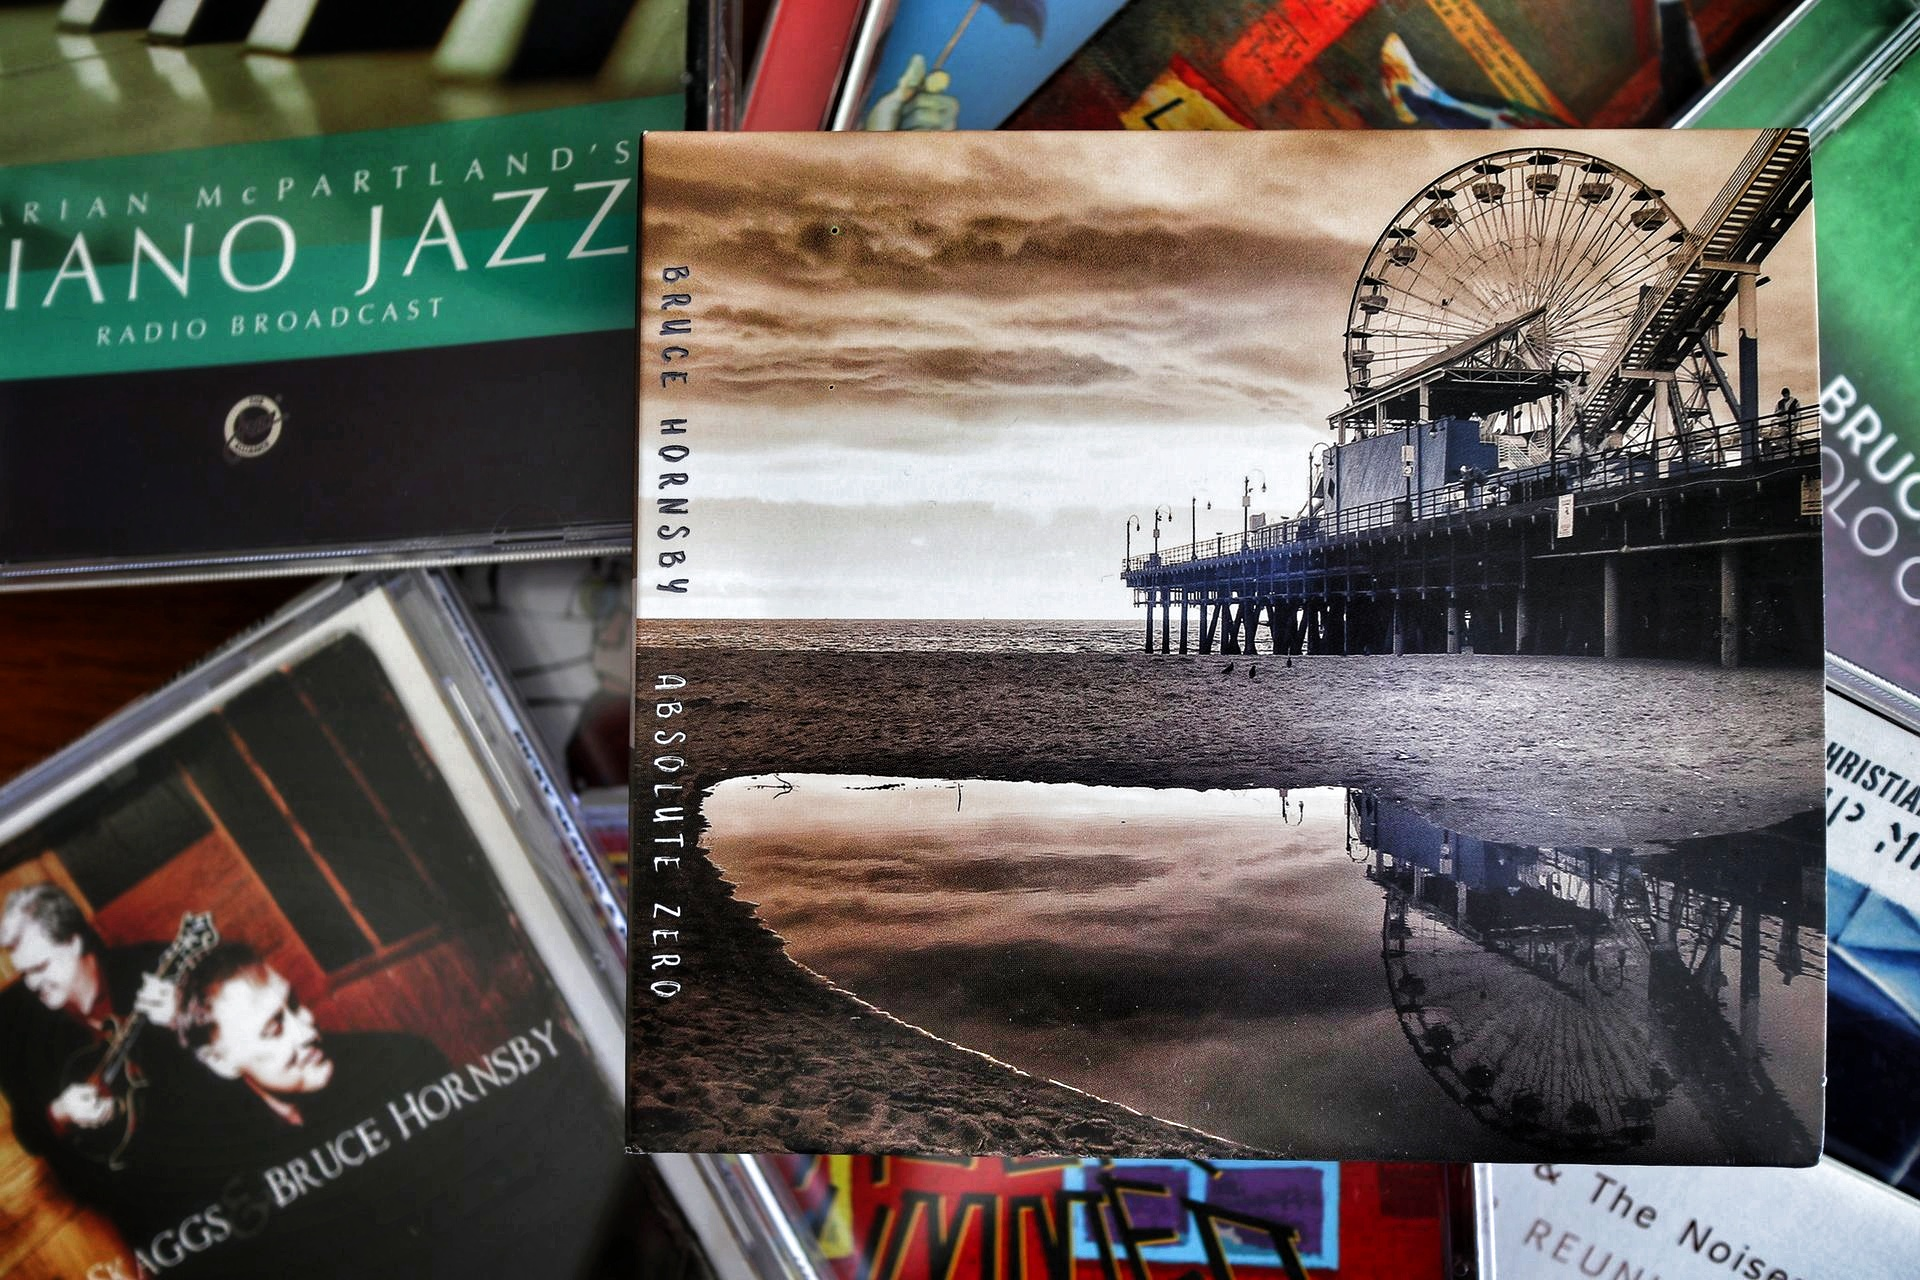 CD Absolute Zero und andere Hornsby-CDs.